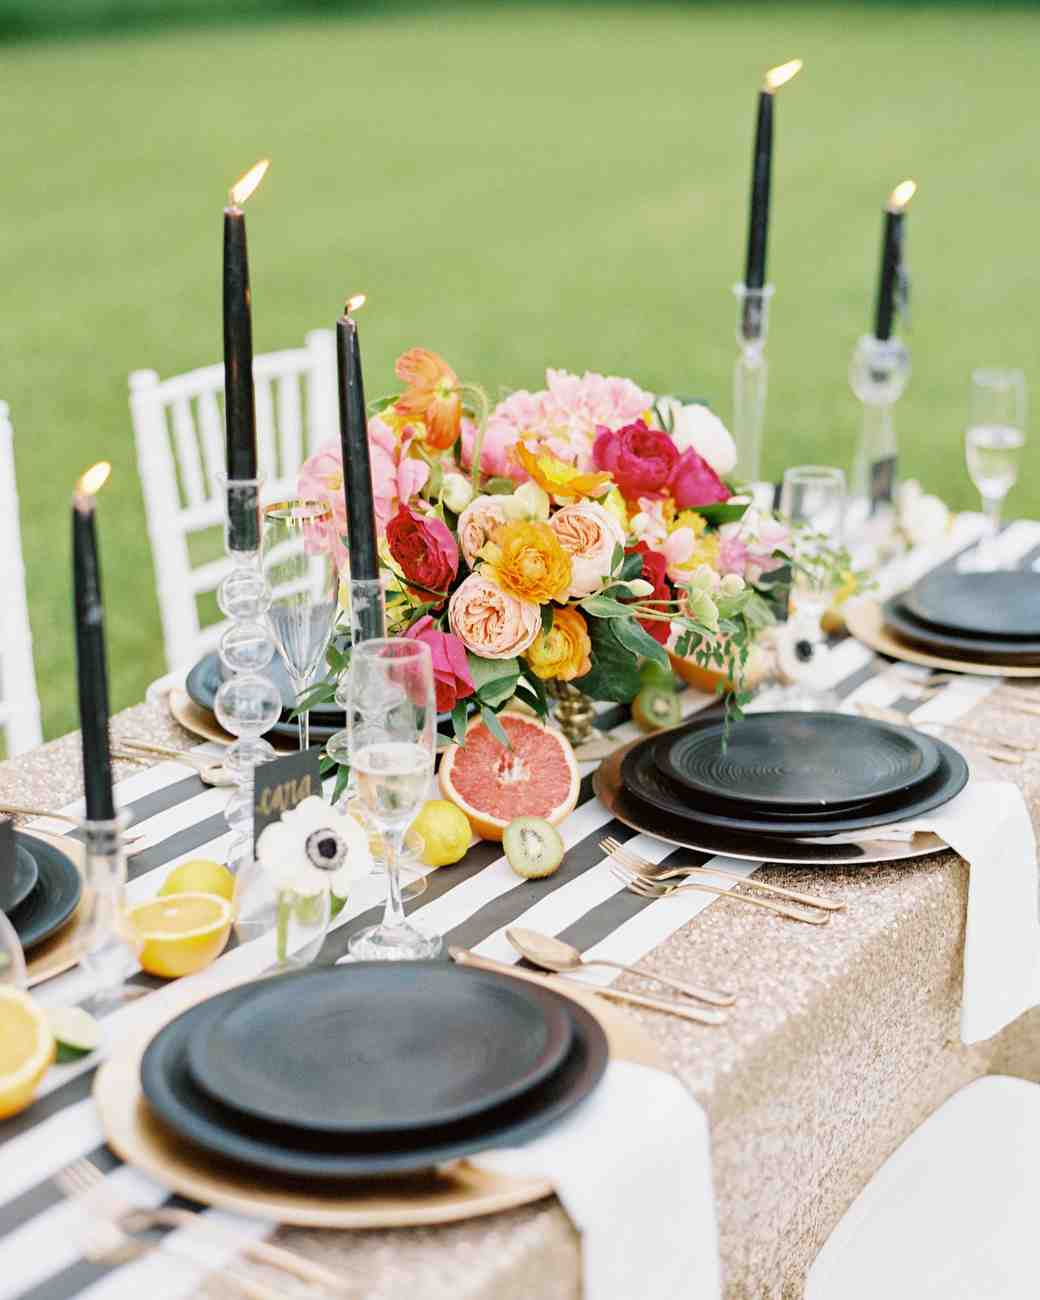 Wedding Centerpieces: 20 Modern Wedding Centerpieces That'll Surprise Your